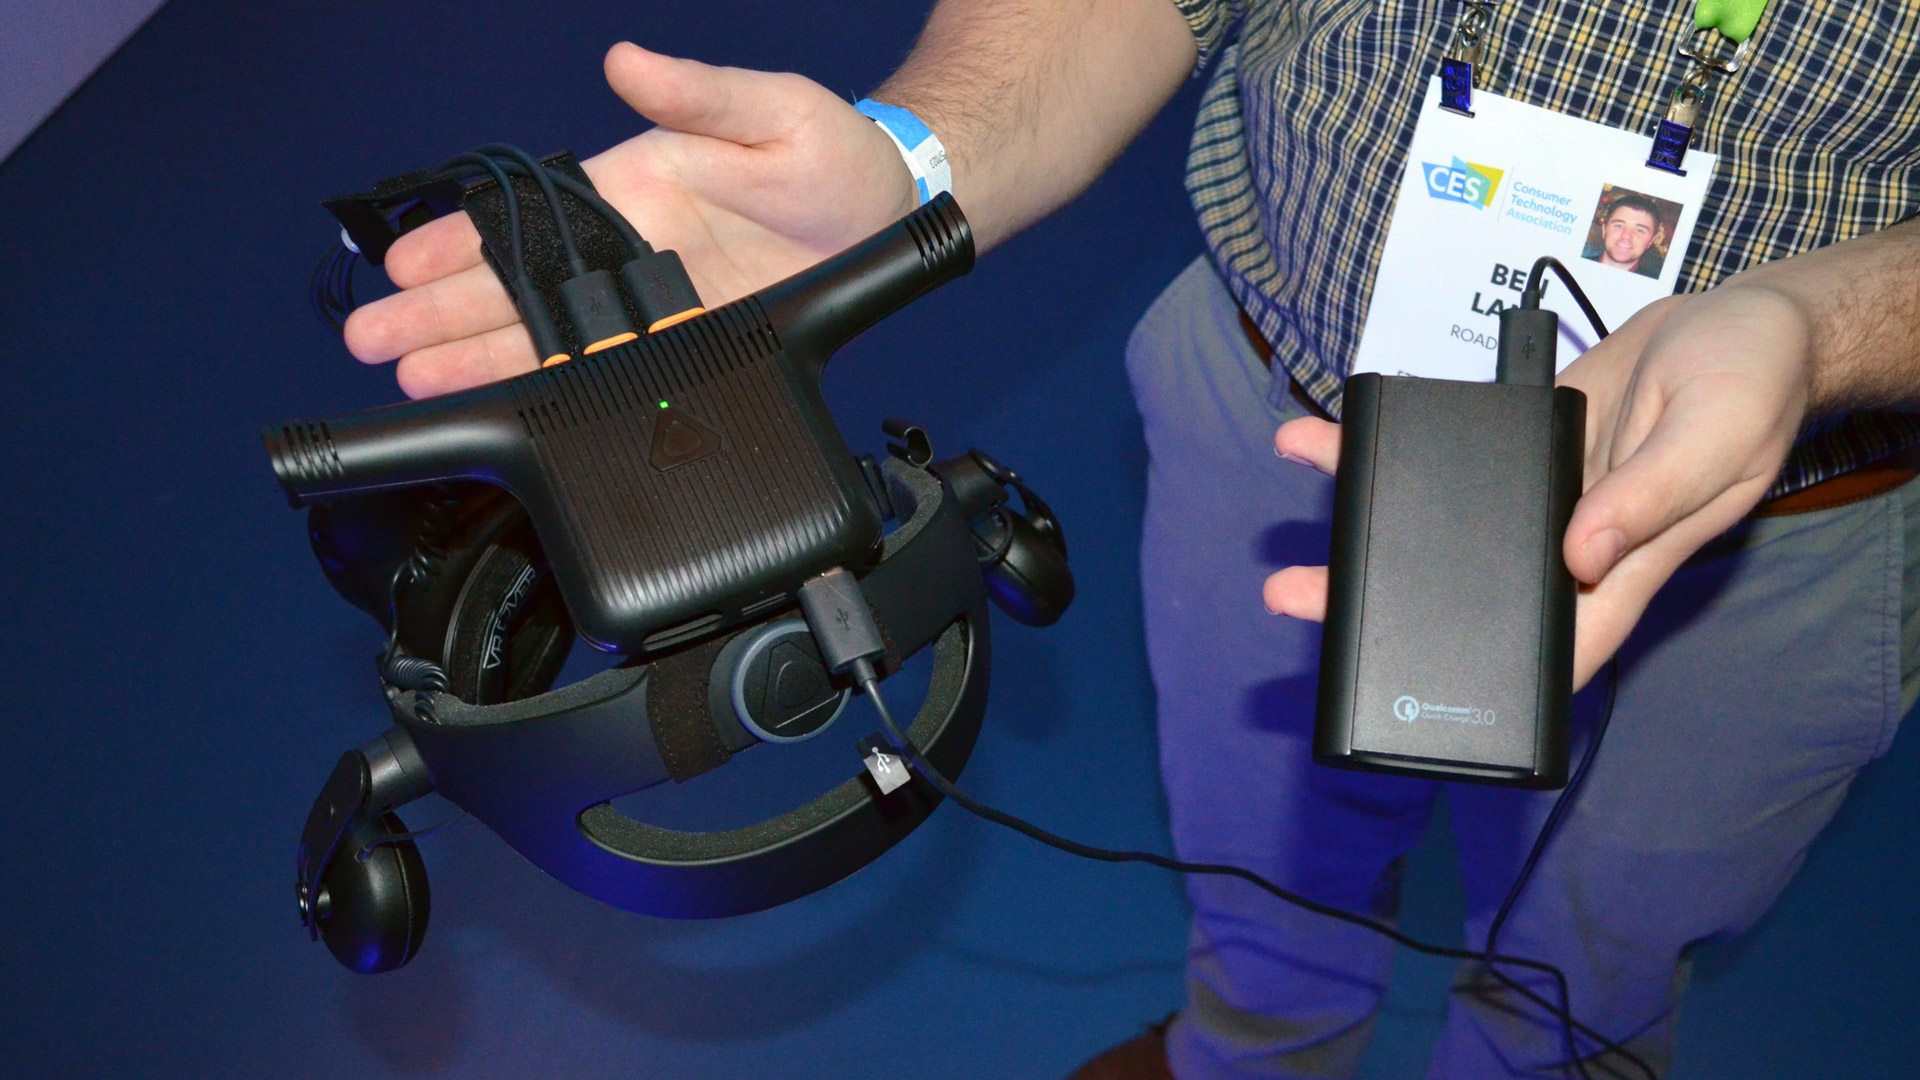 CES 2018: Vive Wireless Adapter Debuts With Robust Connection but